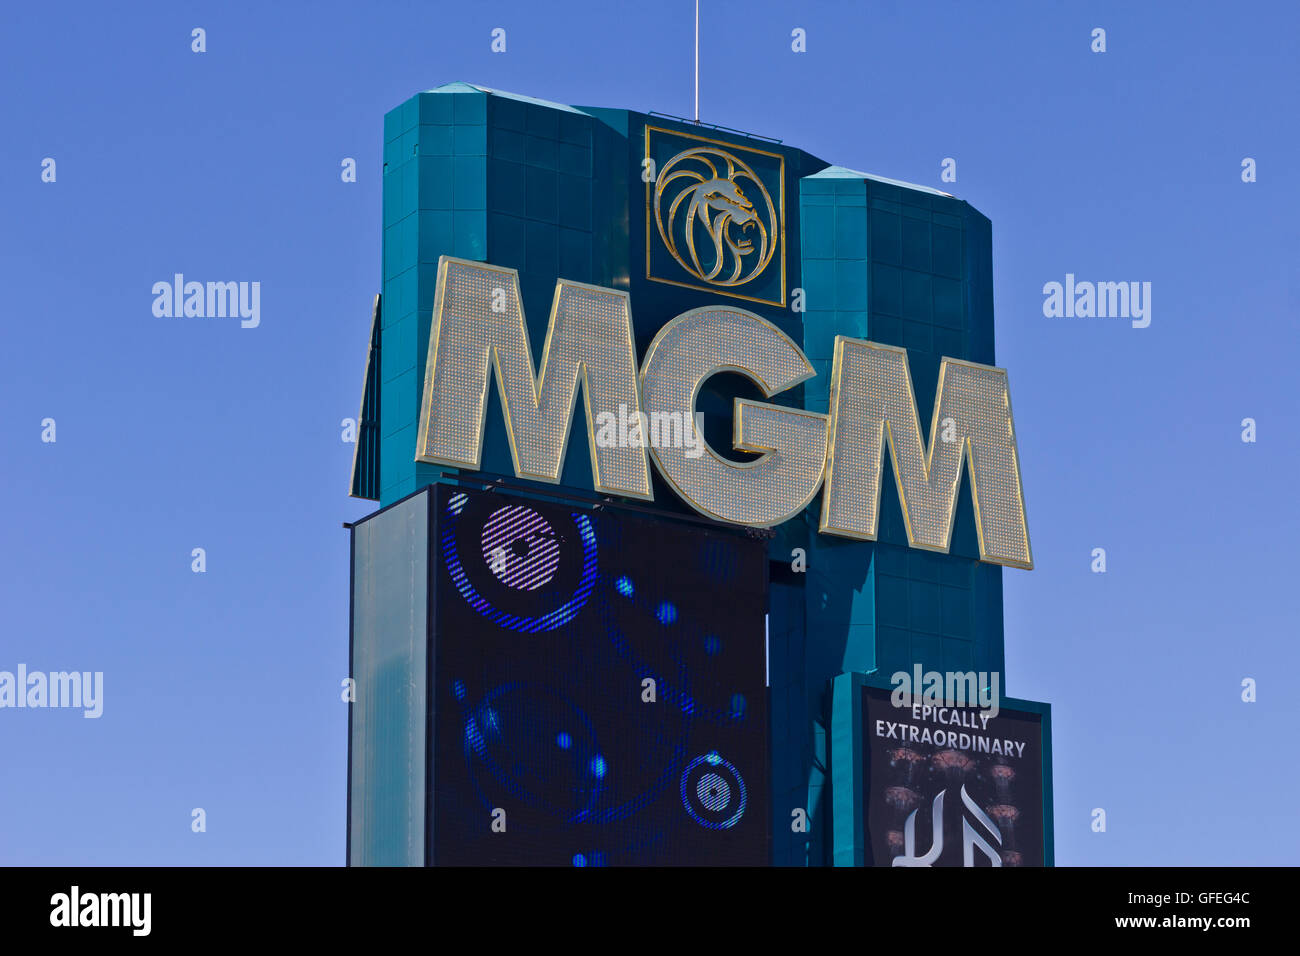 Las Vegas - Circa July 2016: Signage of the MGM Grand Hotel. This Property is a Subsidiary of MGM Resorts International - Stock Image